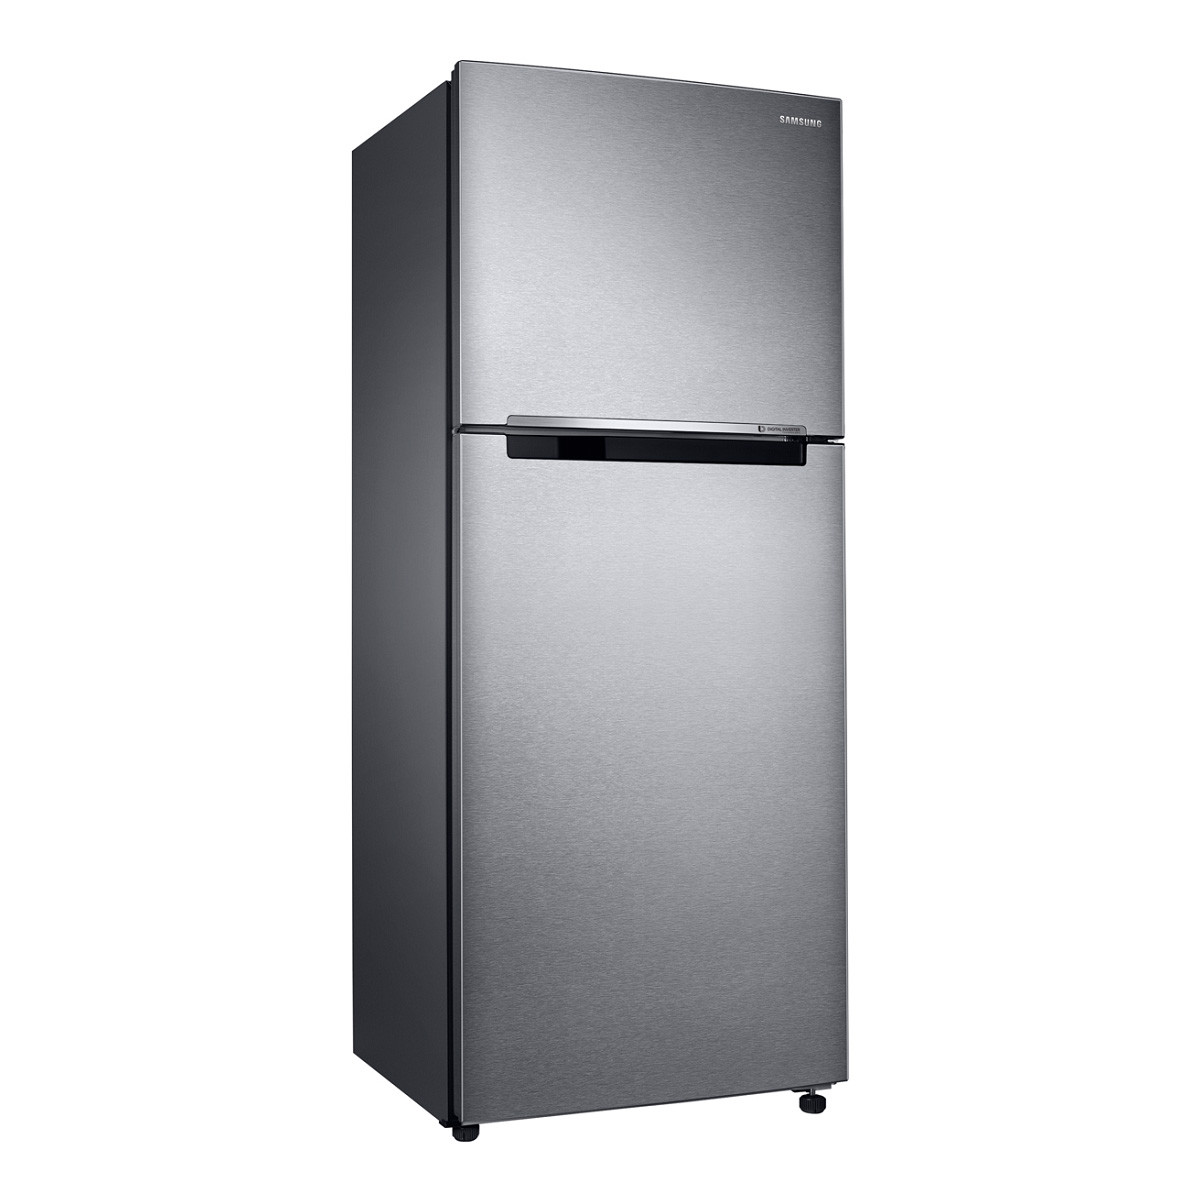 Samsung SR400LSTC 400Litres Top Mount Fridge With Twin